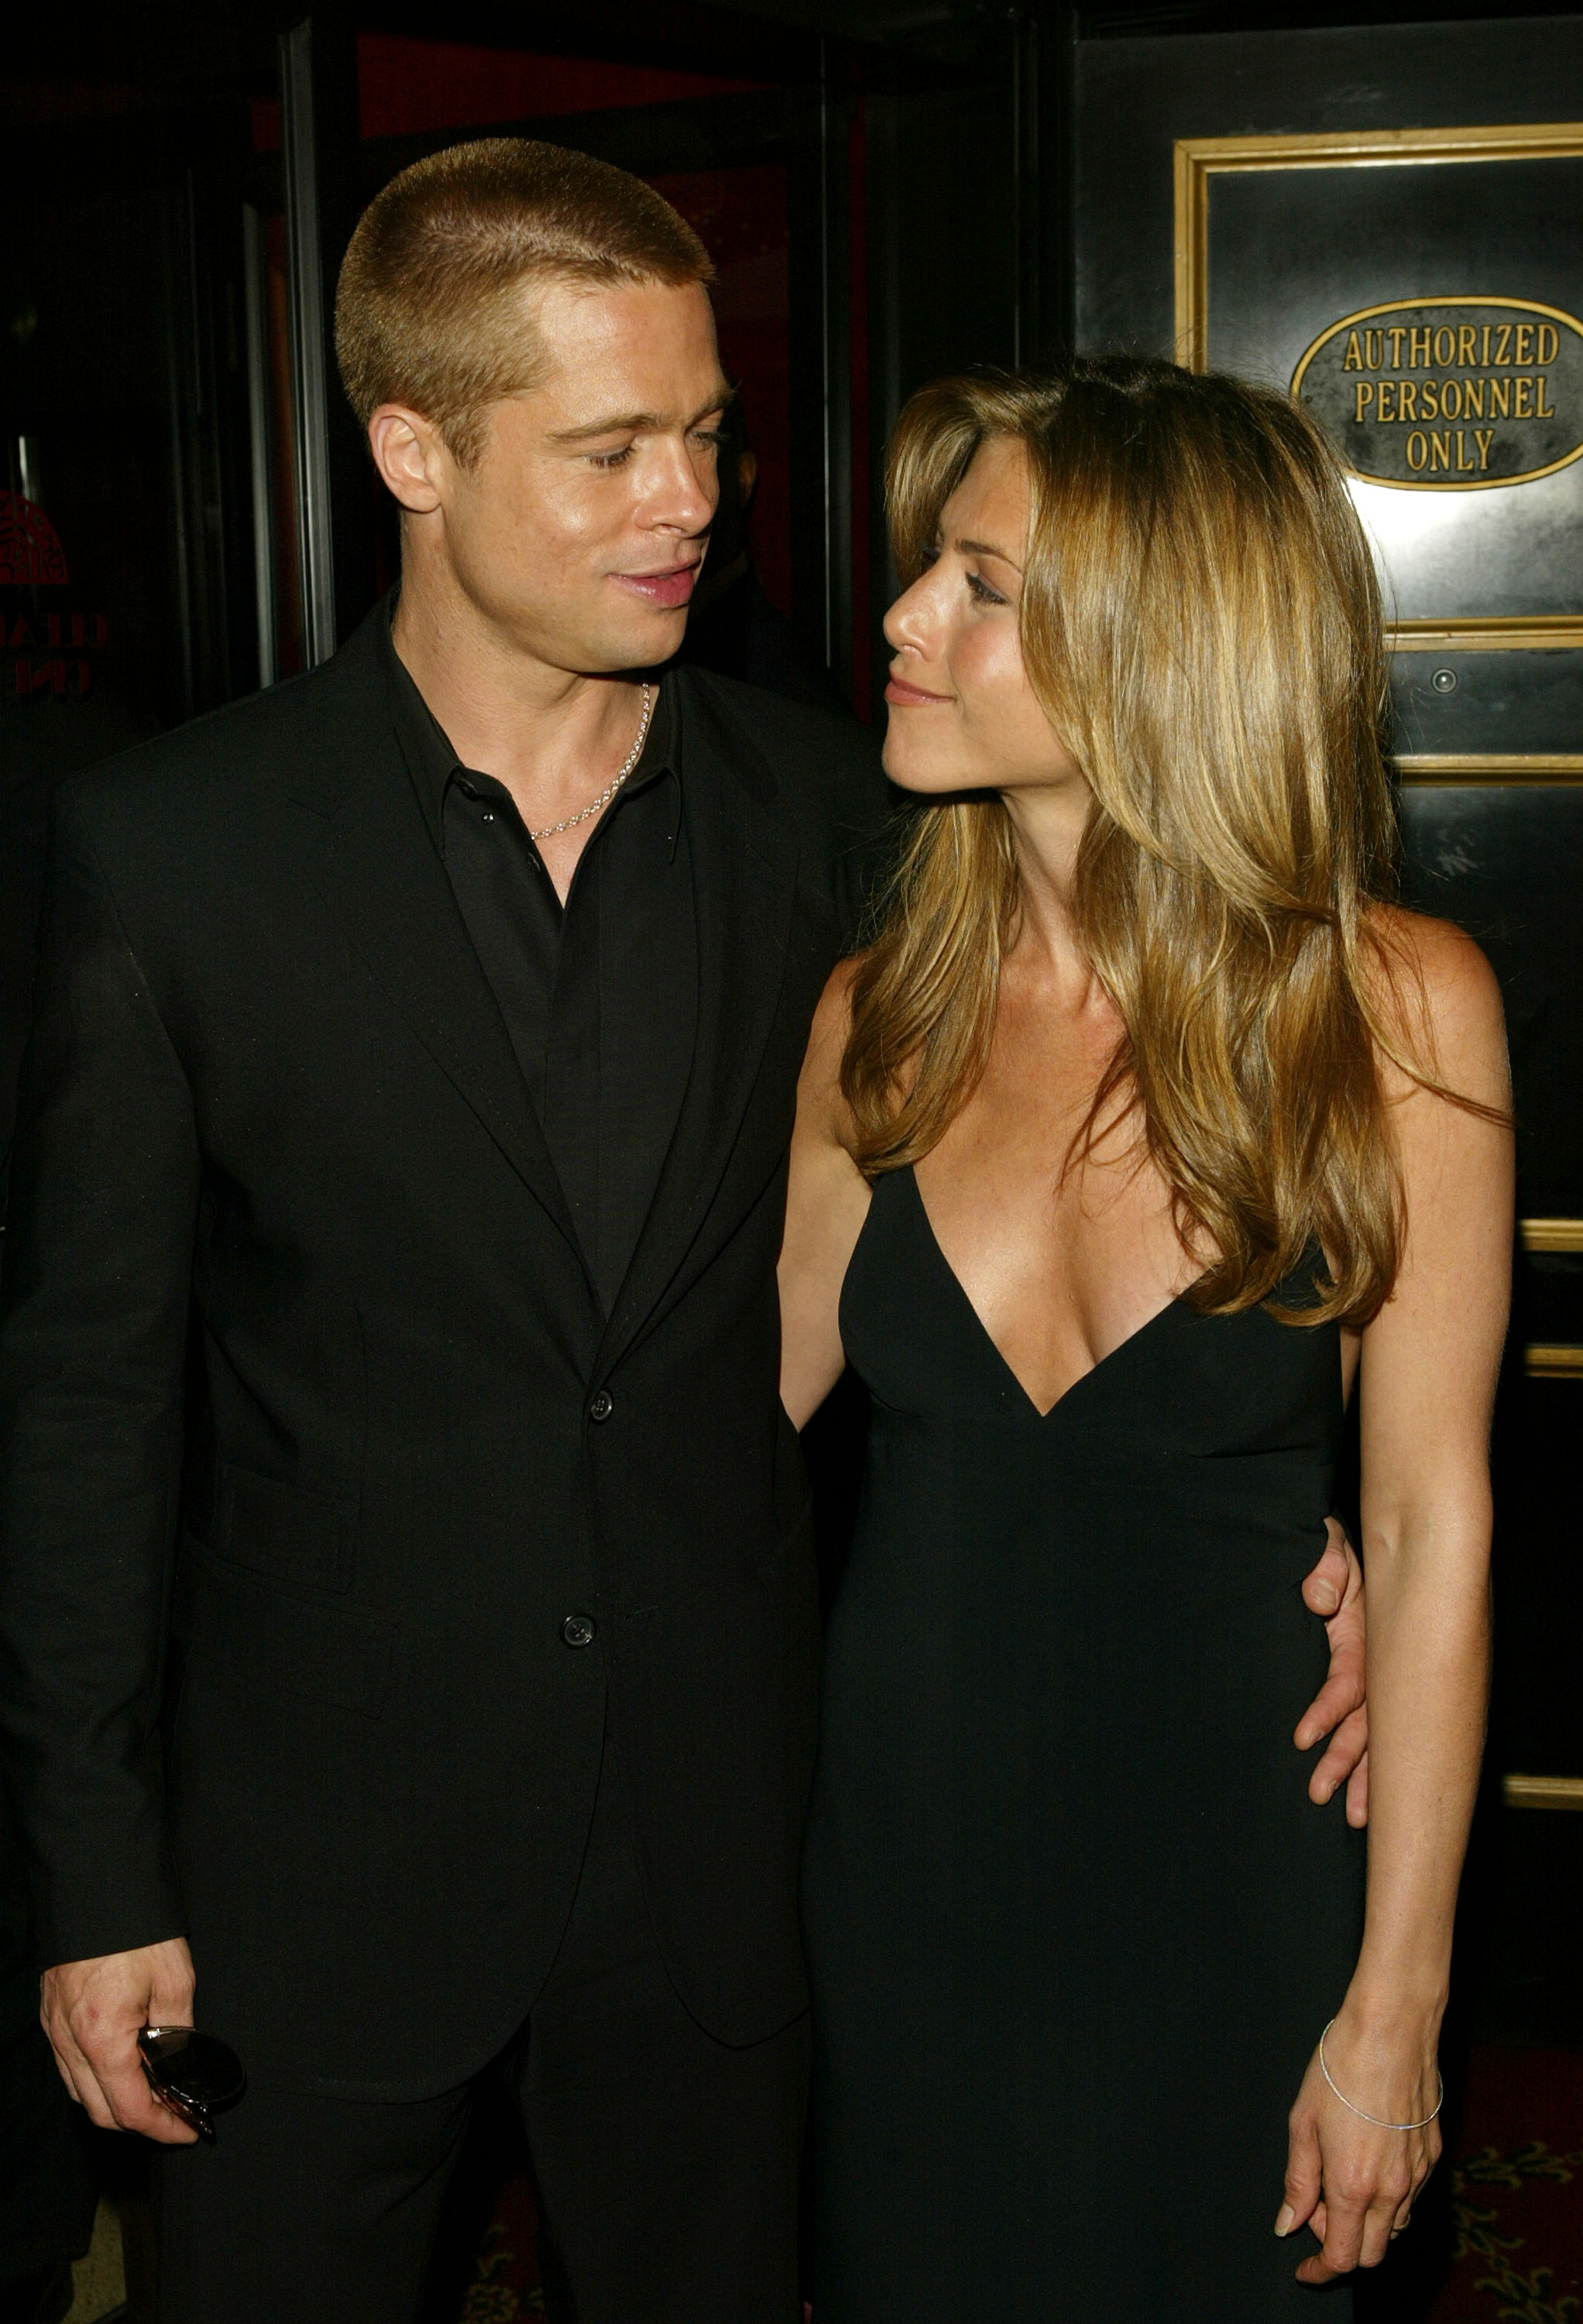 Brad Pitt is now apparently trying to make amends with his ex Jennifer Aniston by putting all the hard feelings in the past and asking for forgiveness. (Photo by Peter Kramer/Getty Images)